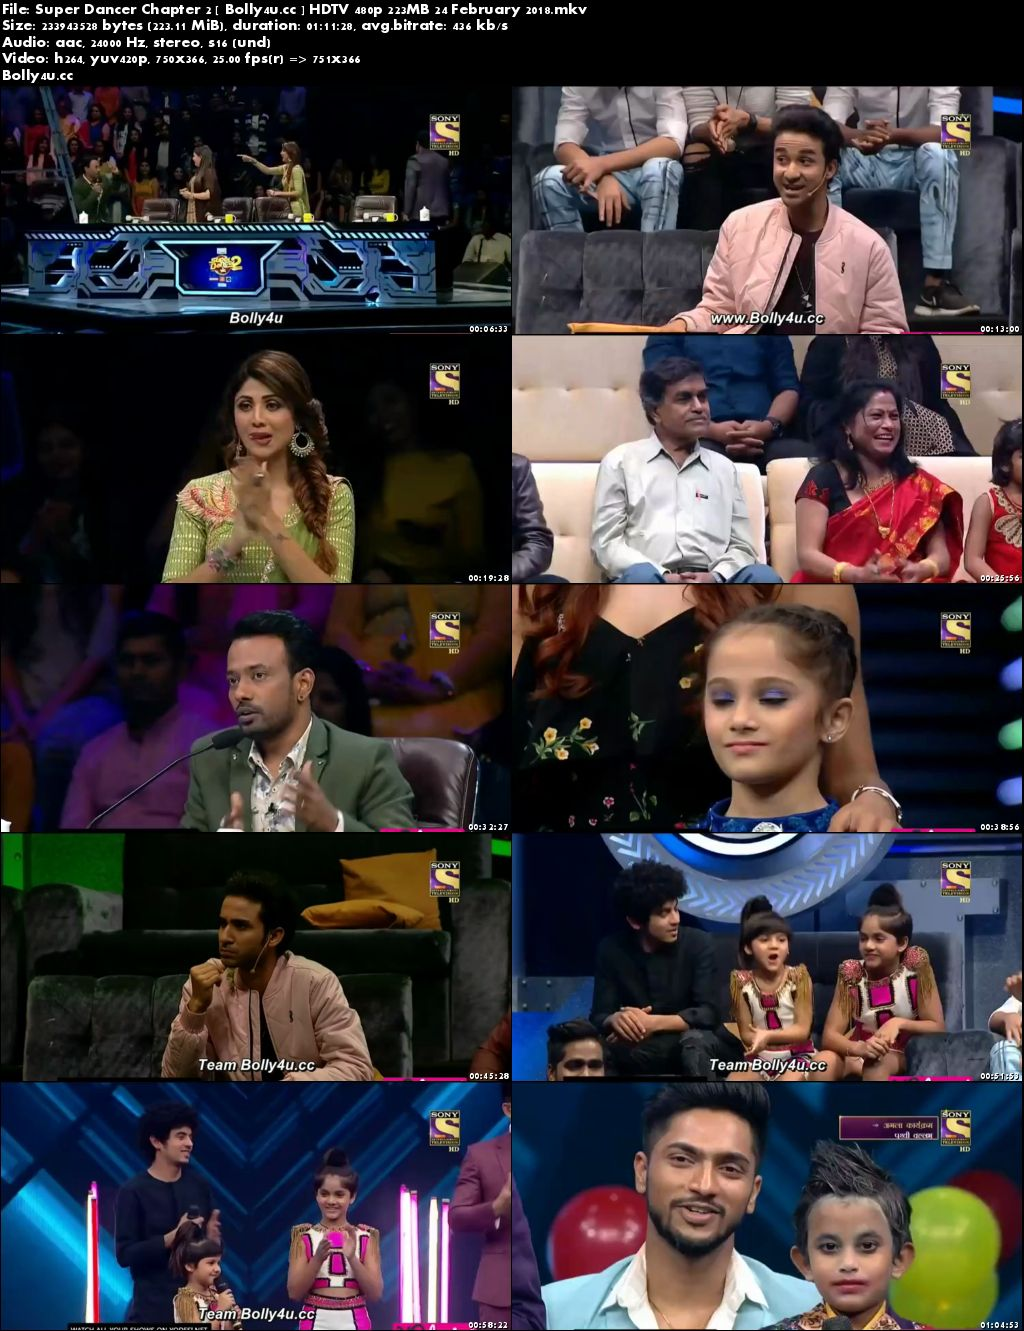 Super Dancer Chapter 2 HDTV 480p 200Mb 24 February 2018 Download